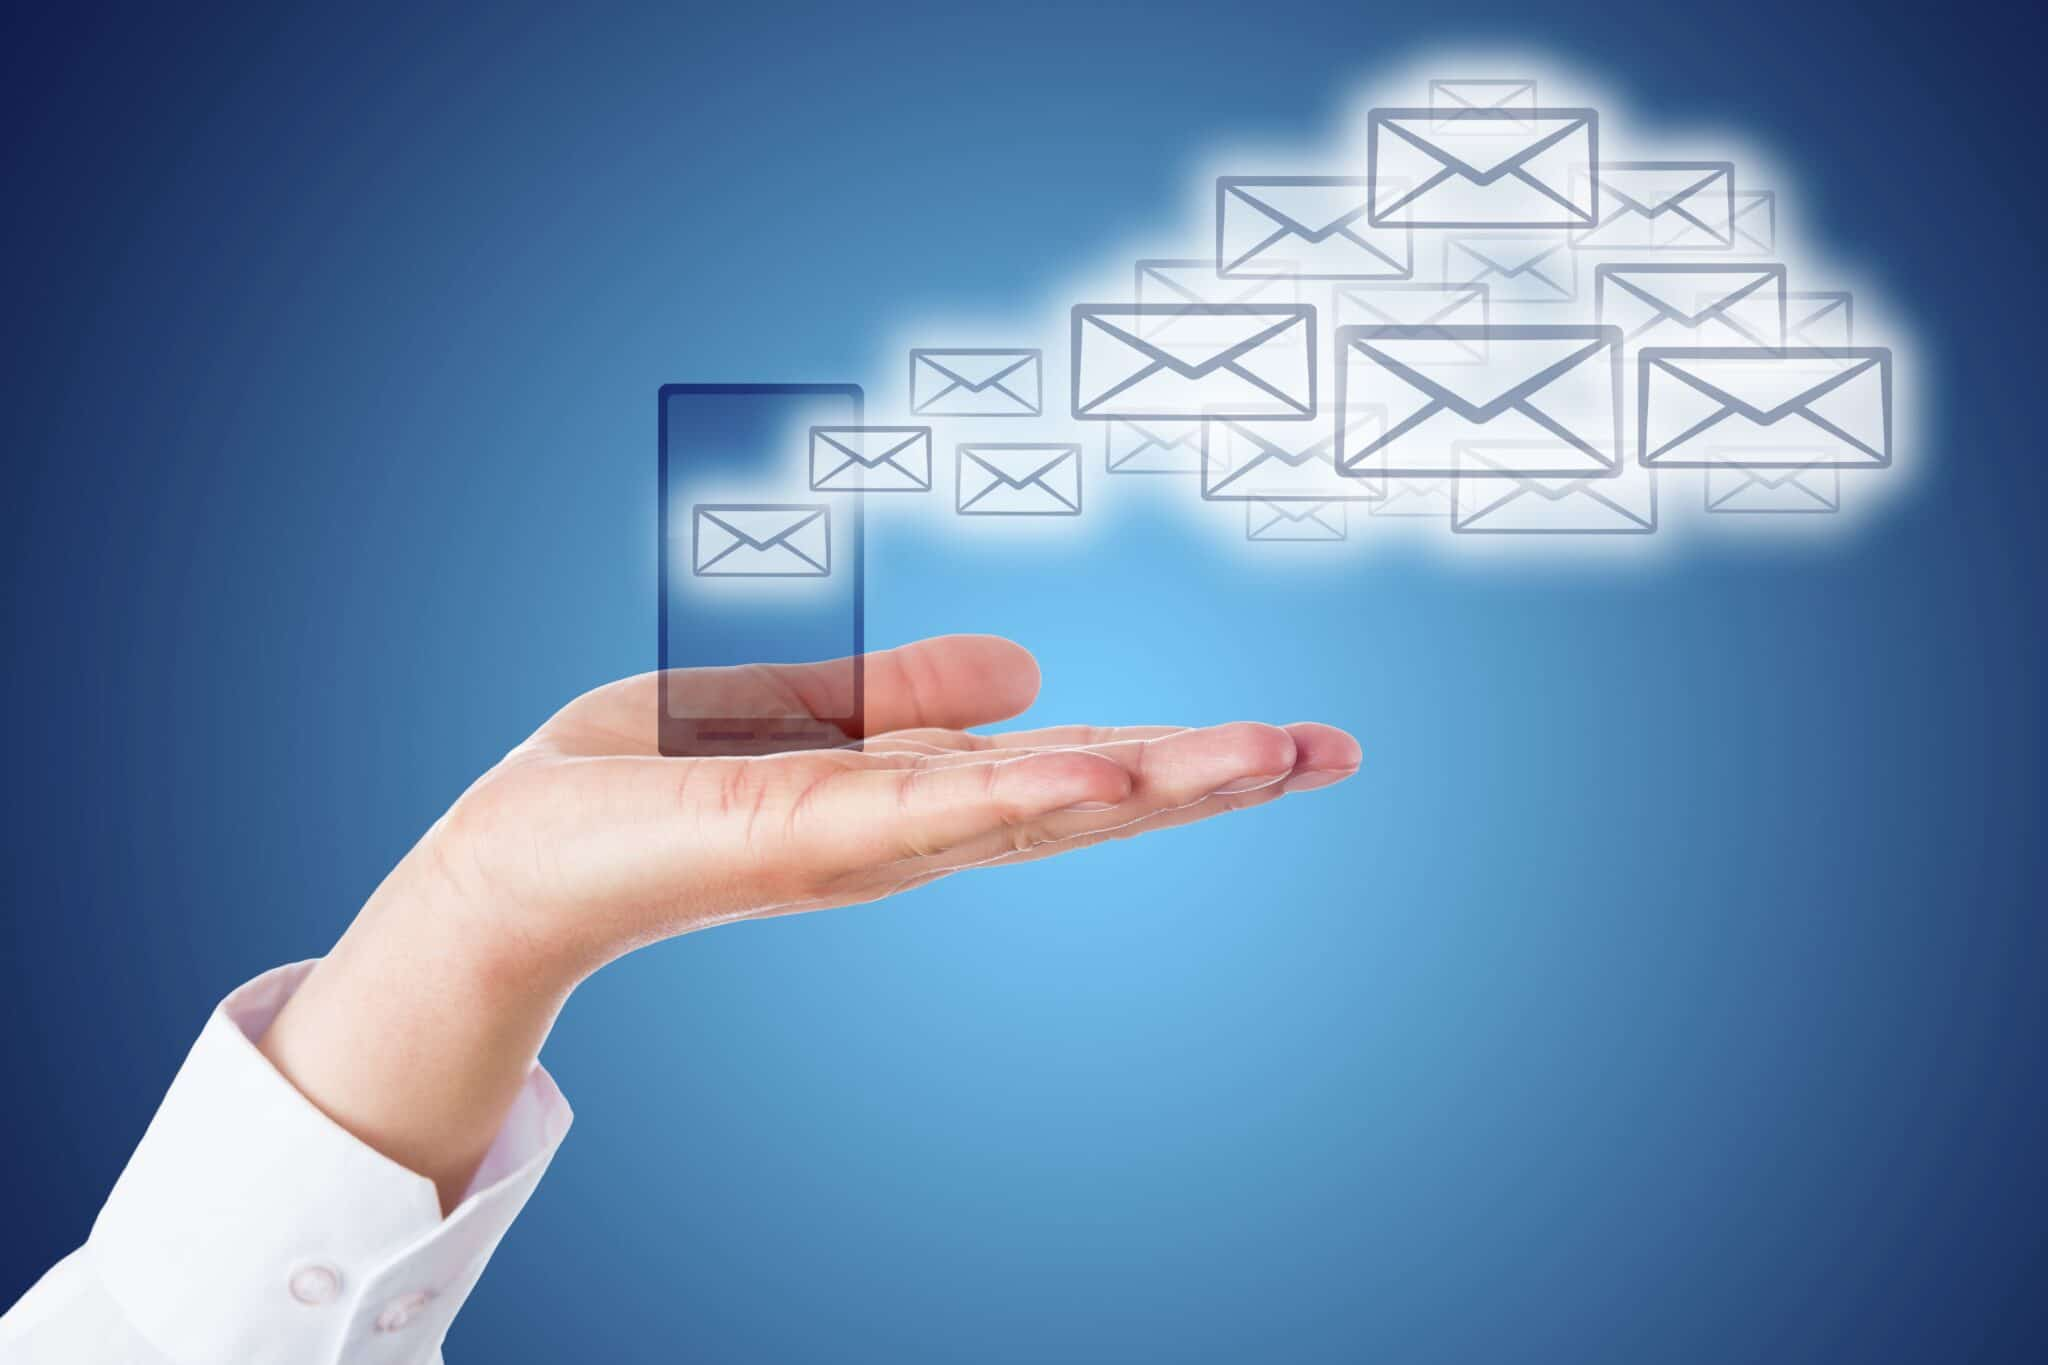 Email Cloud Leaving Smart Phone Over Blue Ground